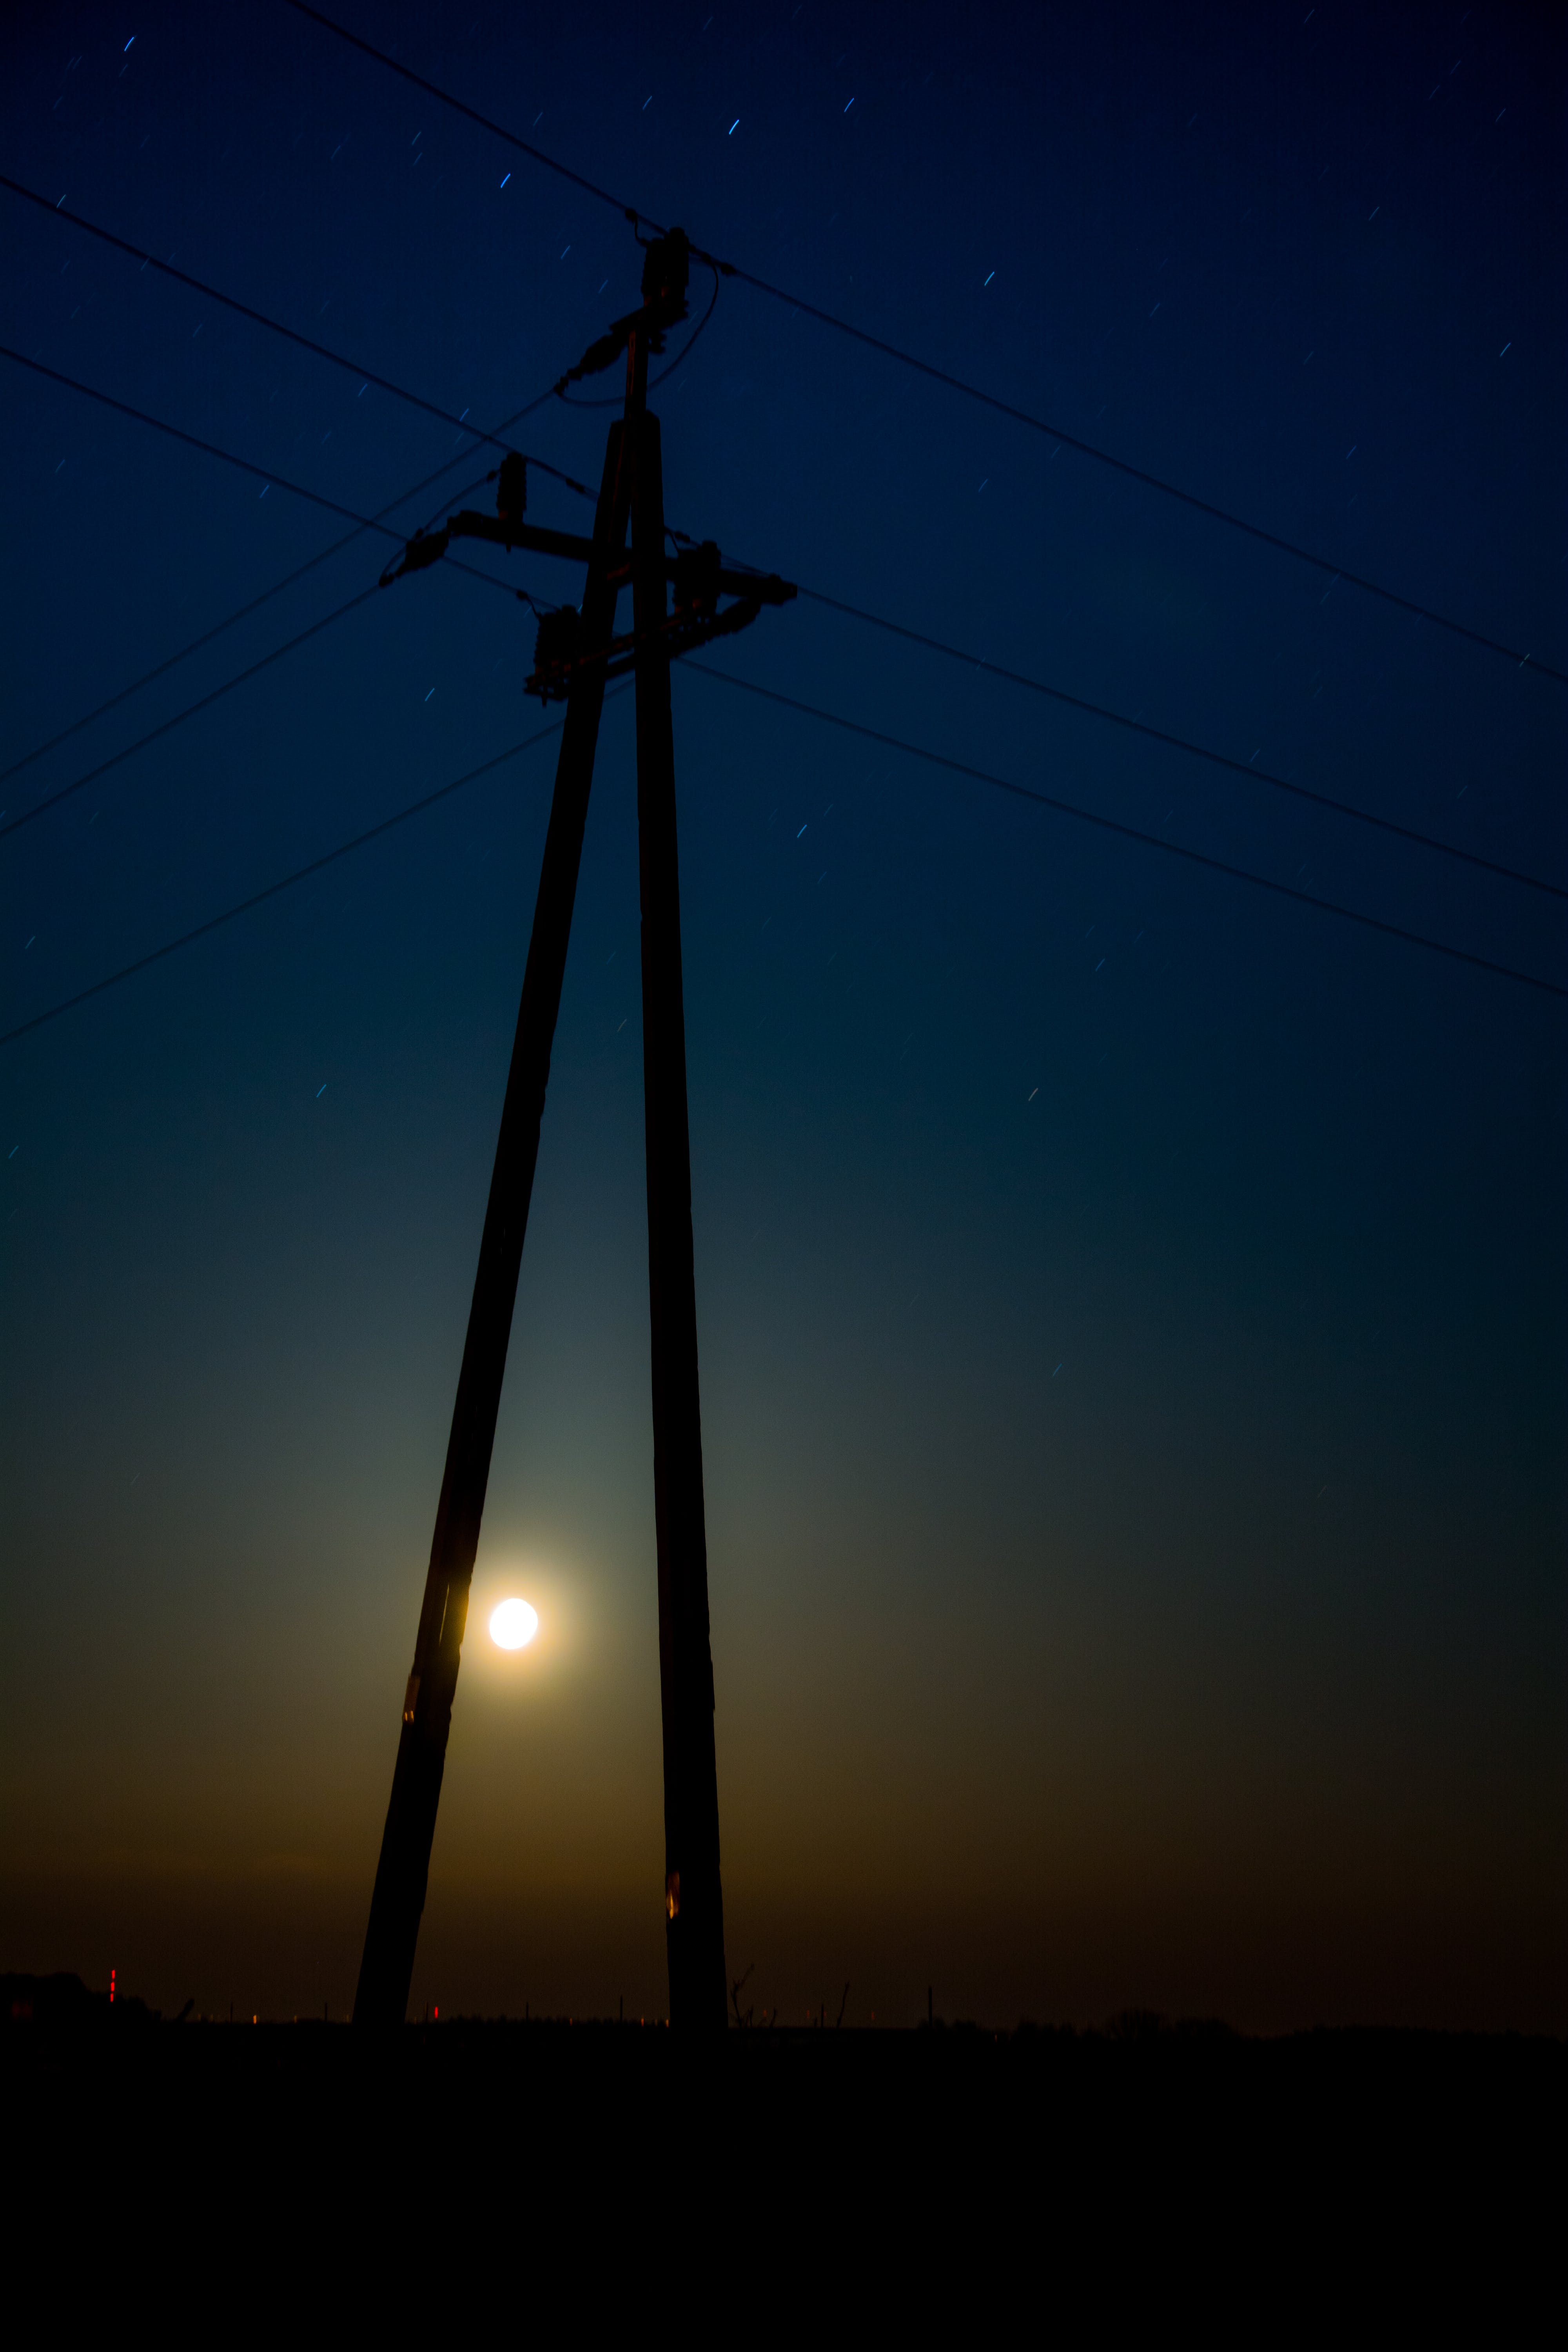 Free stock photo of bluesky, electricity pole, moon, night